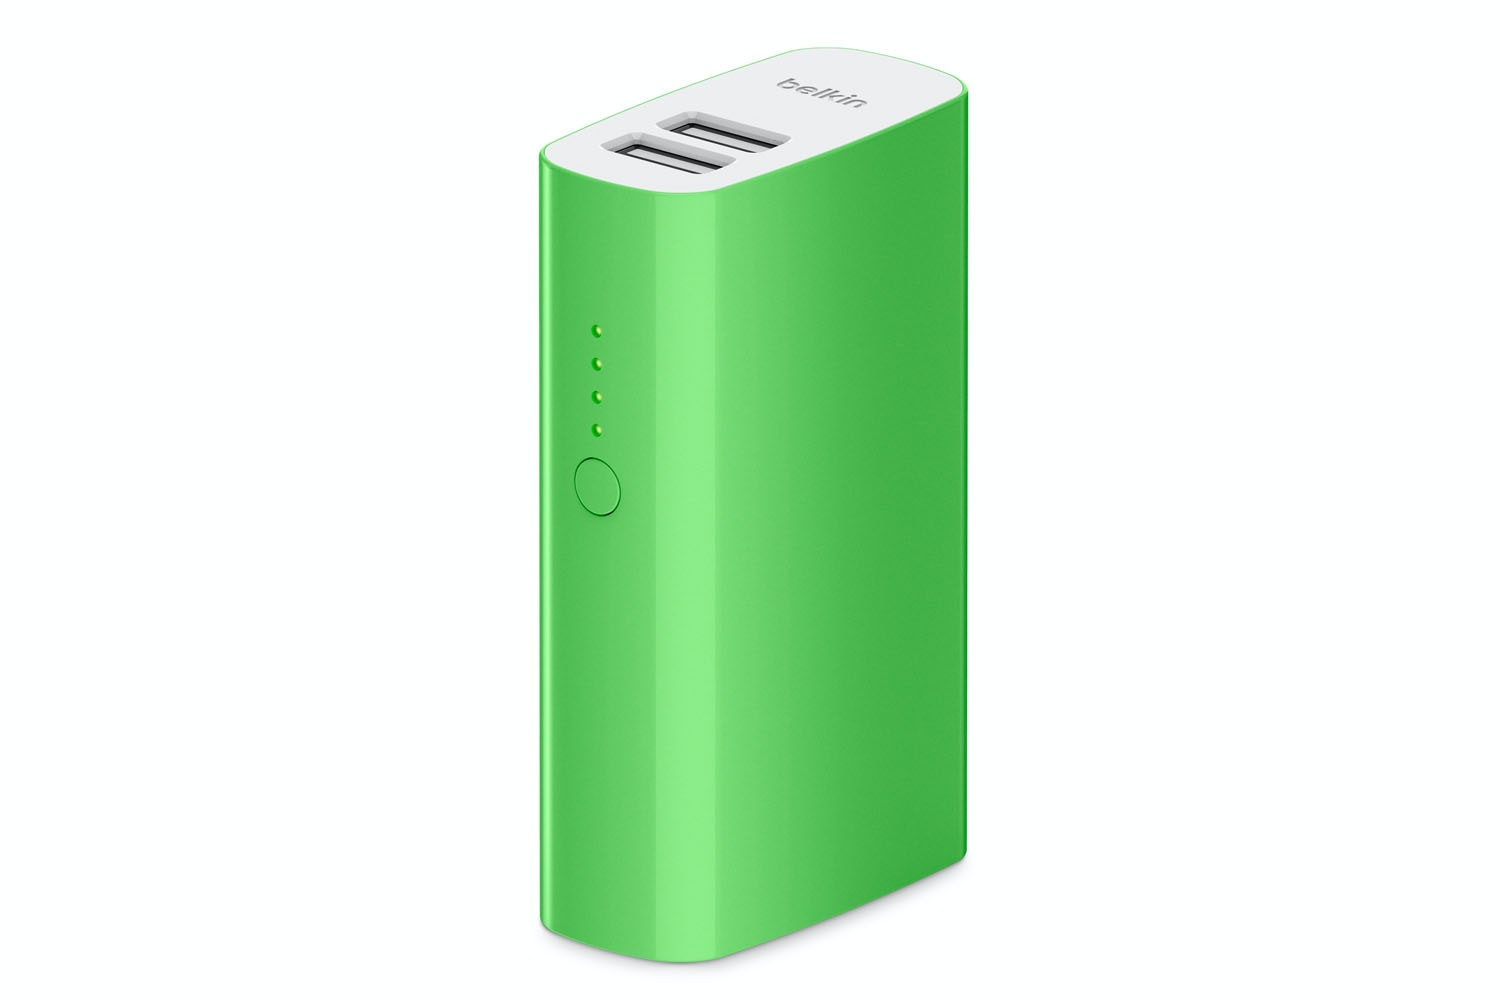 Belkin Battery Pack 4000mAh | Green